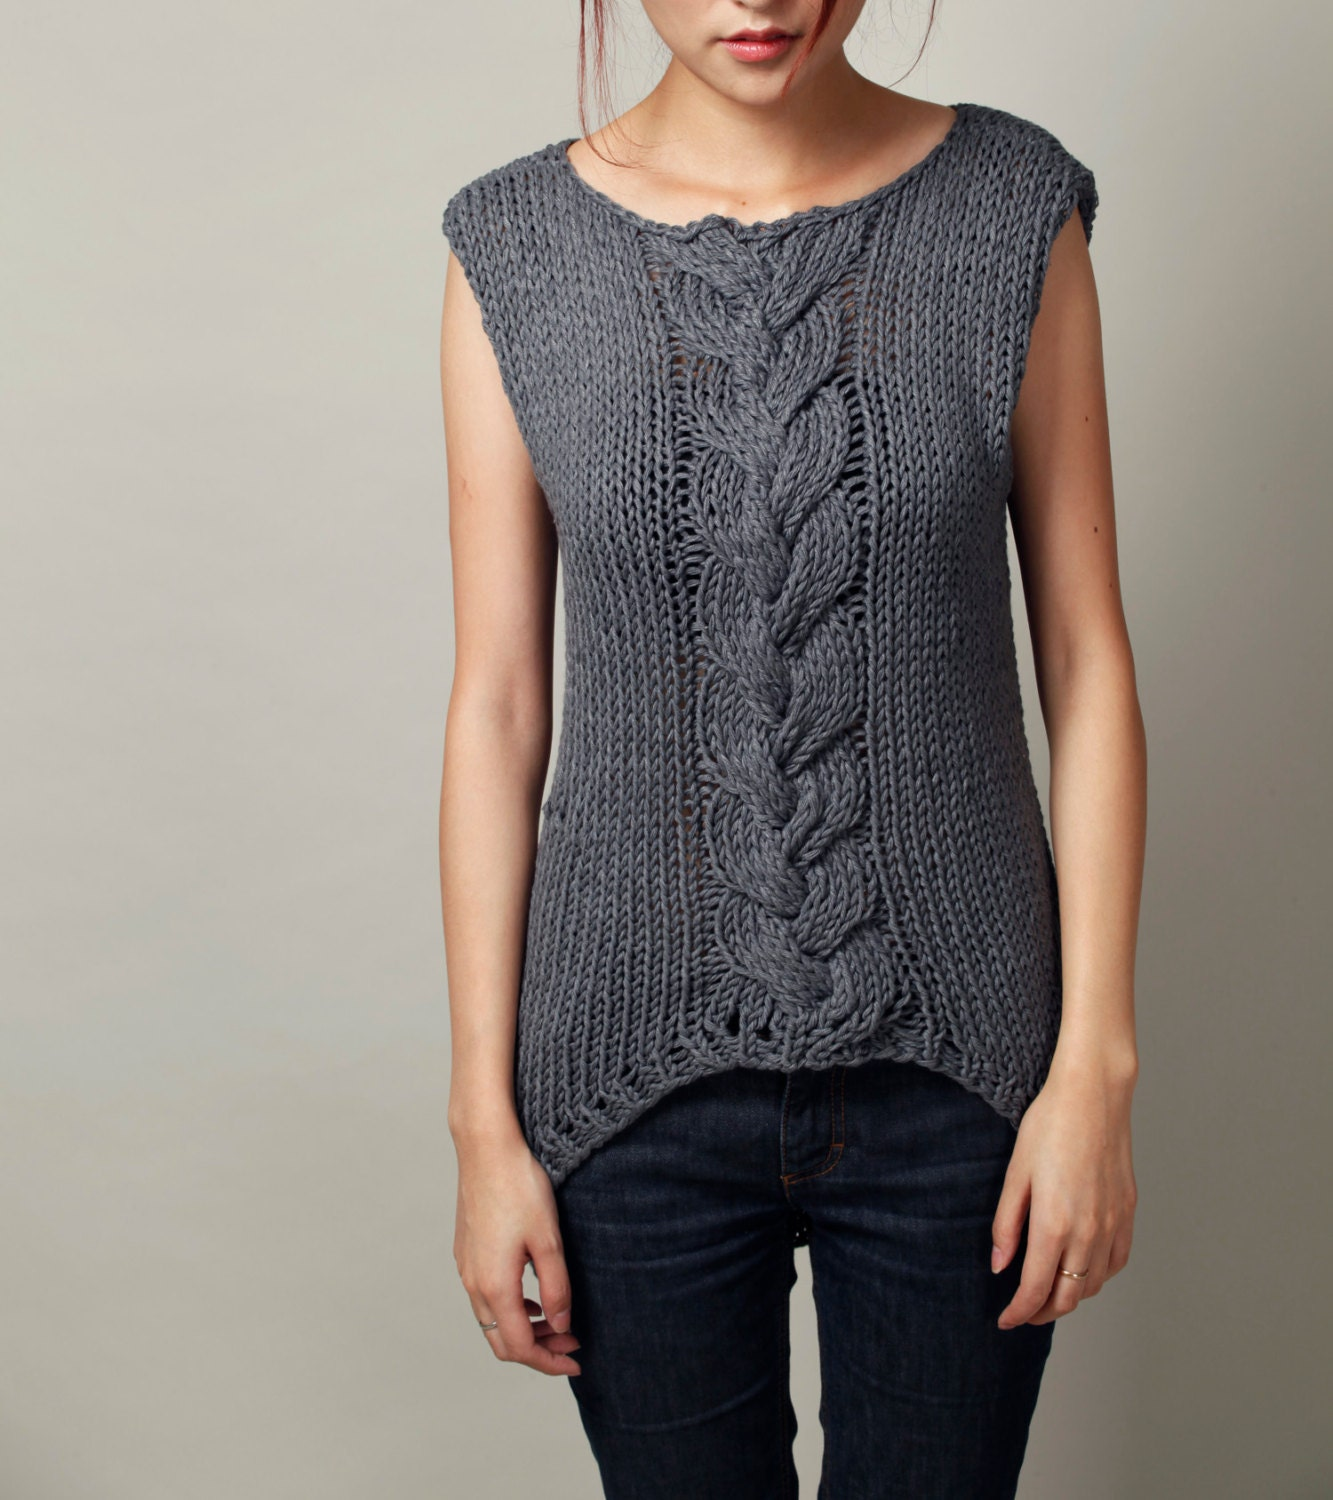 Hand knitted sweater Charcoal Sleeveless Tunic by MaxMelody